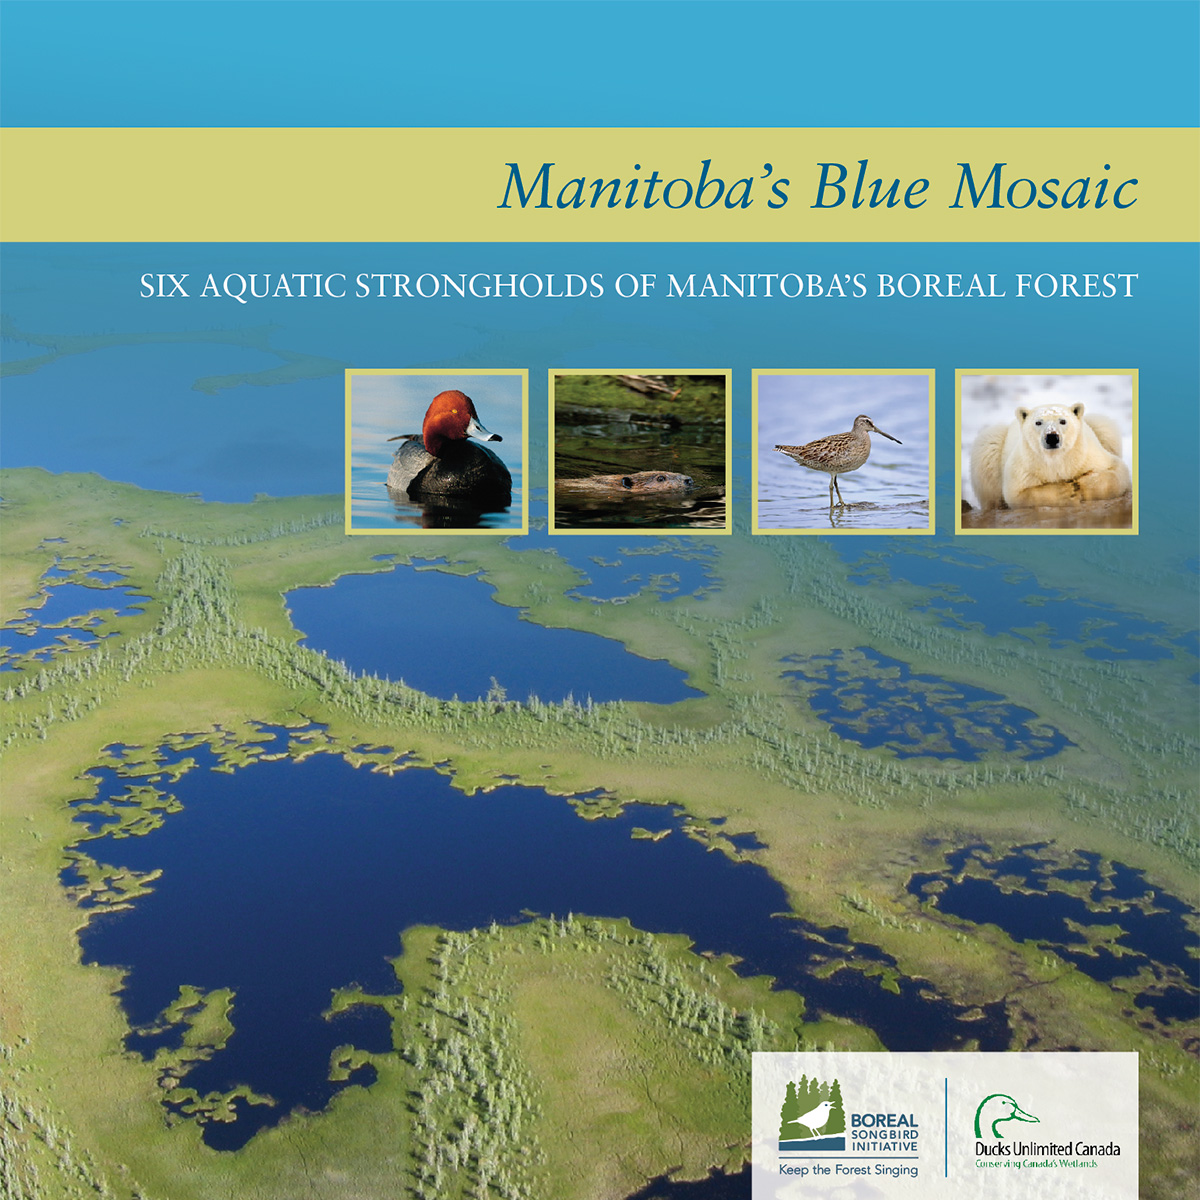 Scientific Report: Manitoba's Blue Mosaic